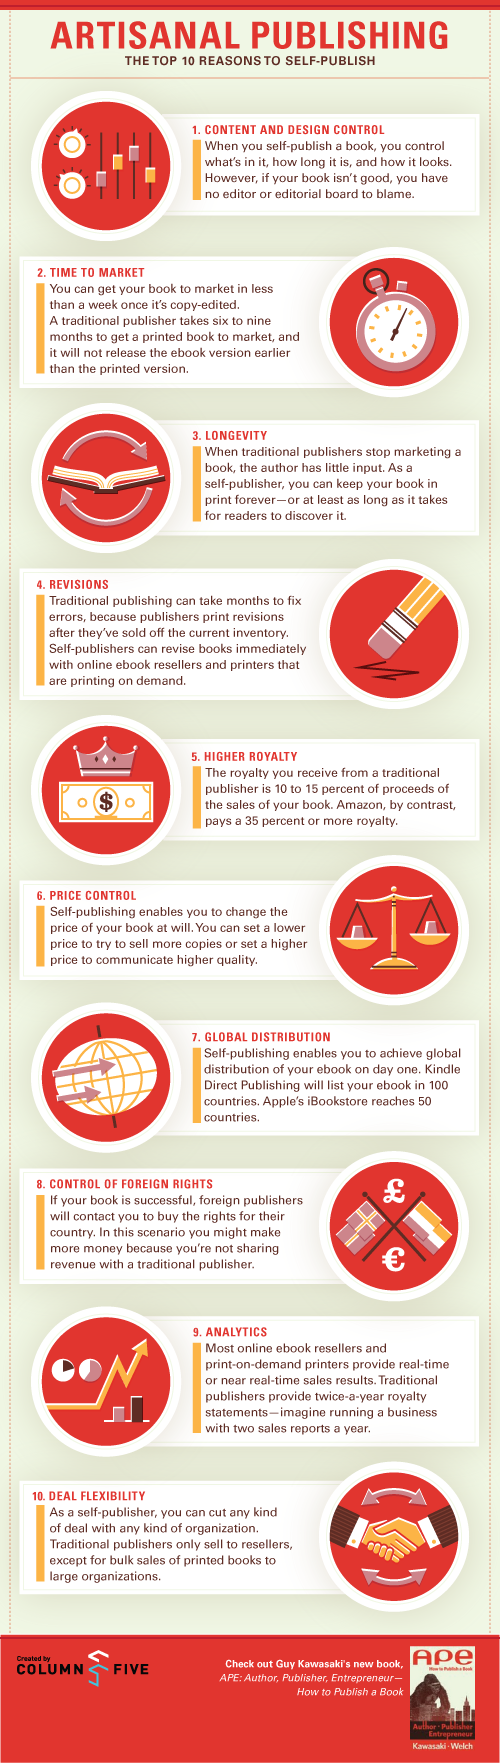 Top 10 reasons to self-publish